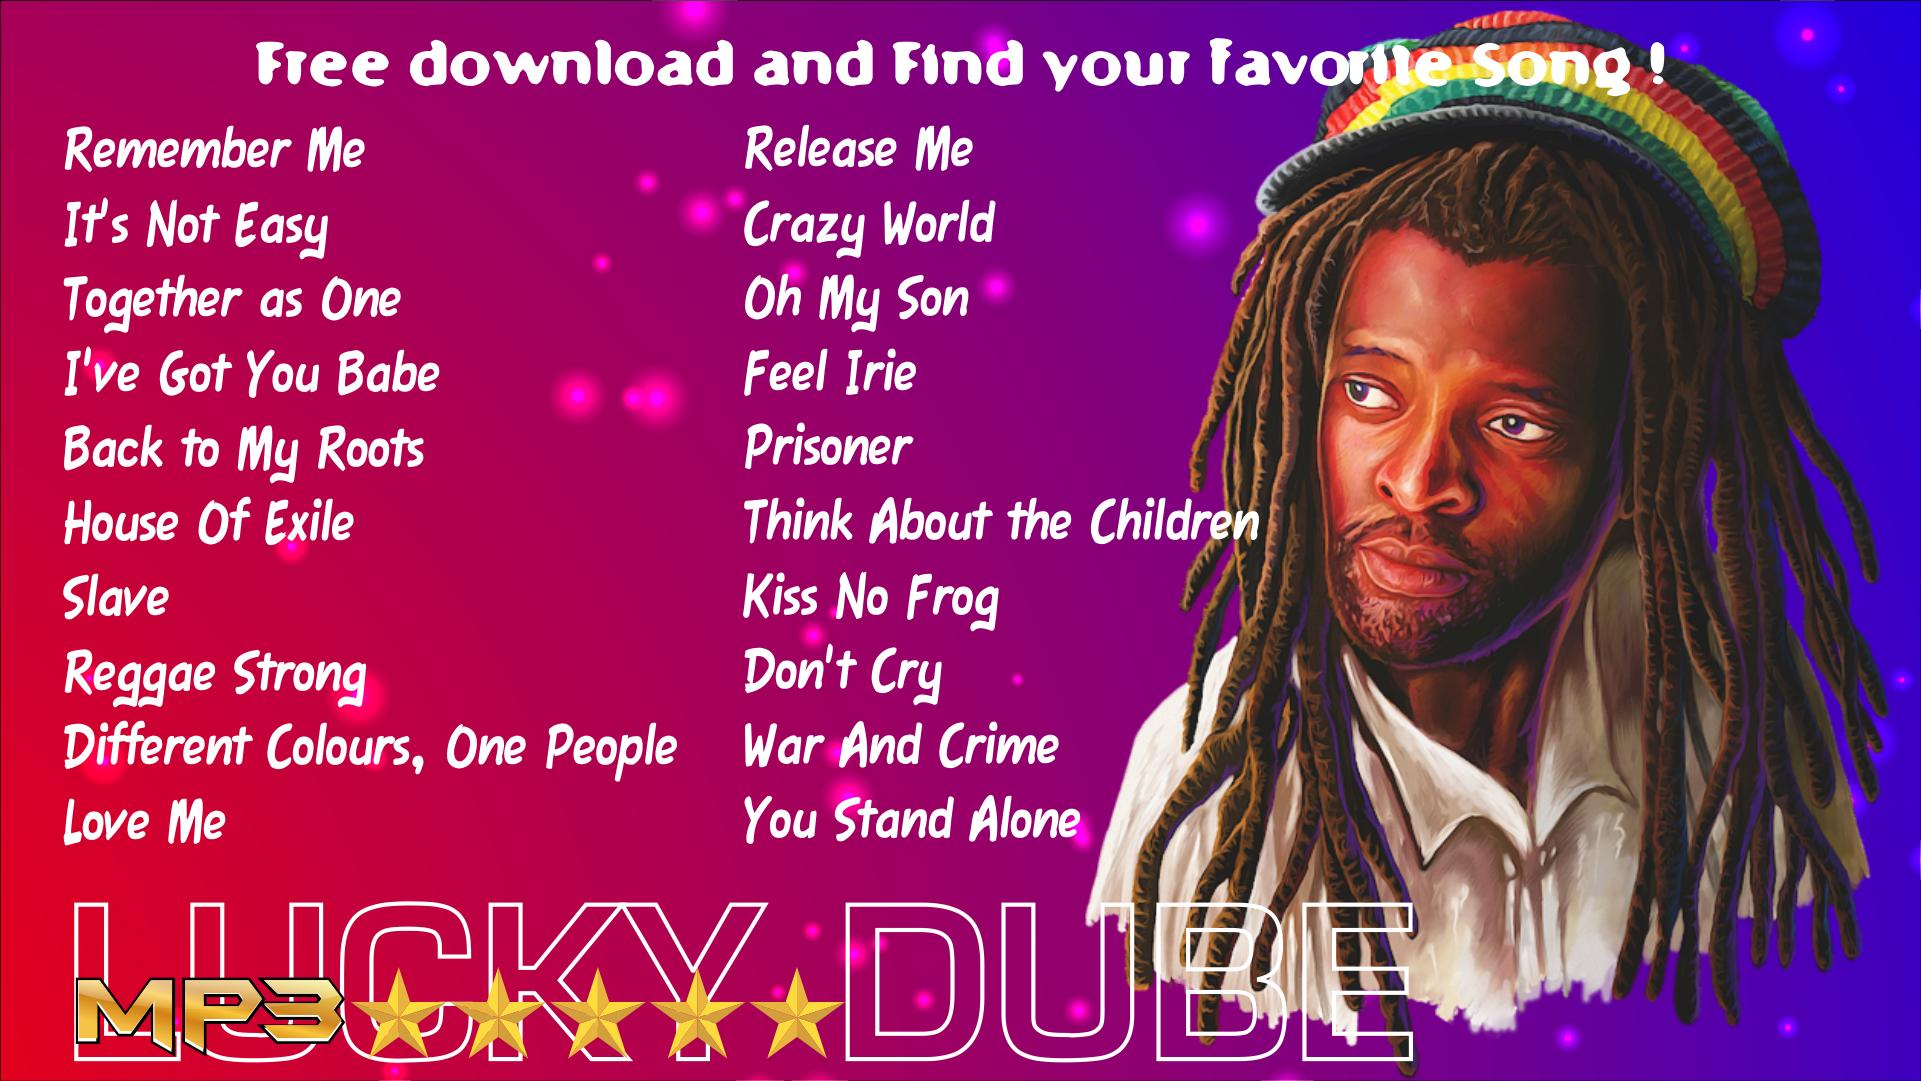 lucky dube house of exile download free